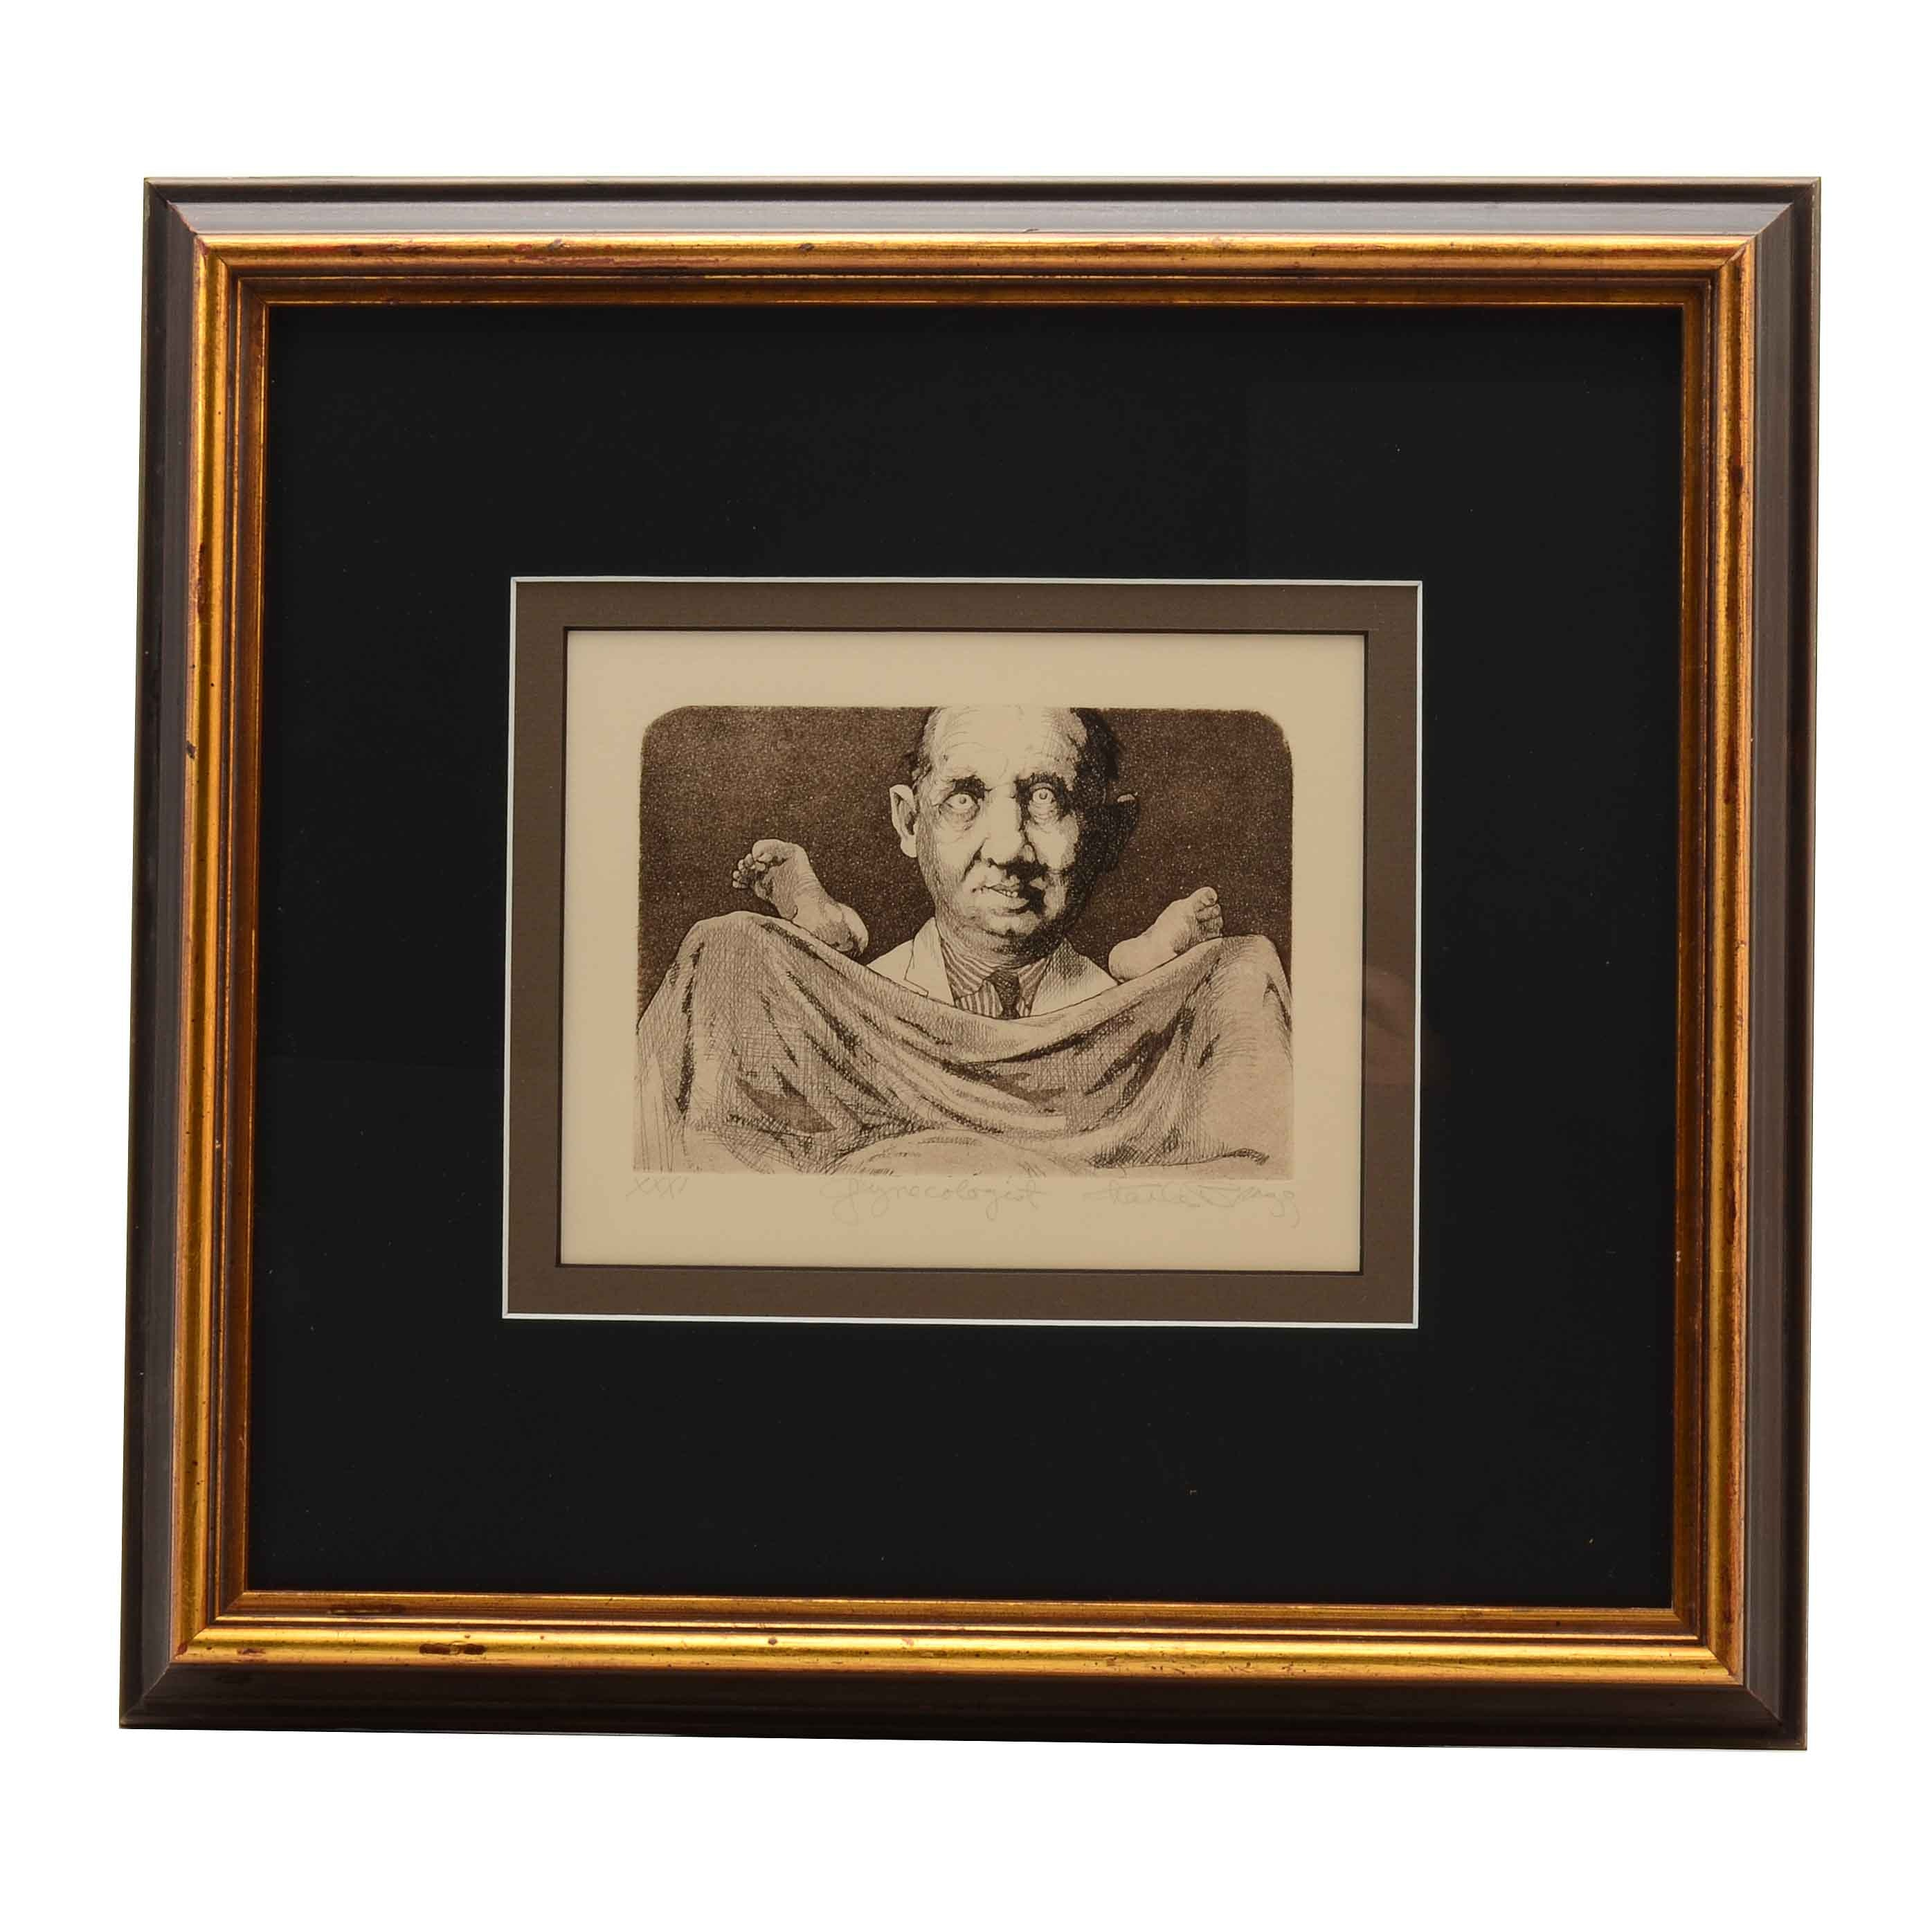 """Charles Bragg Signed Limited Edition Aquatint Etching """"Gynocologist"""""""